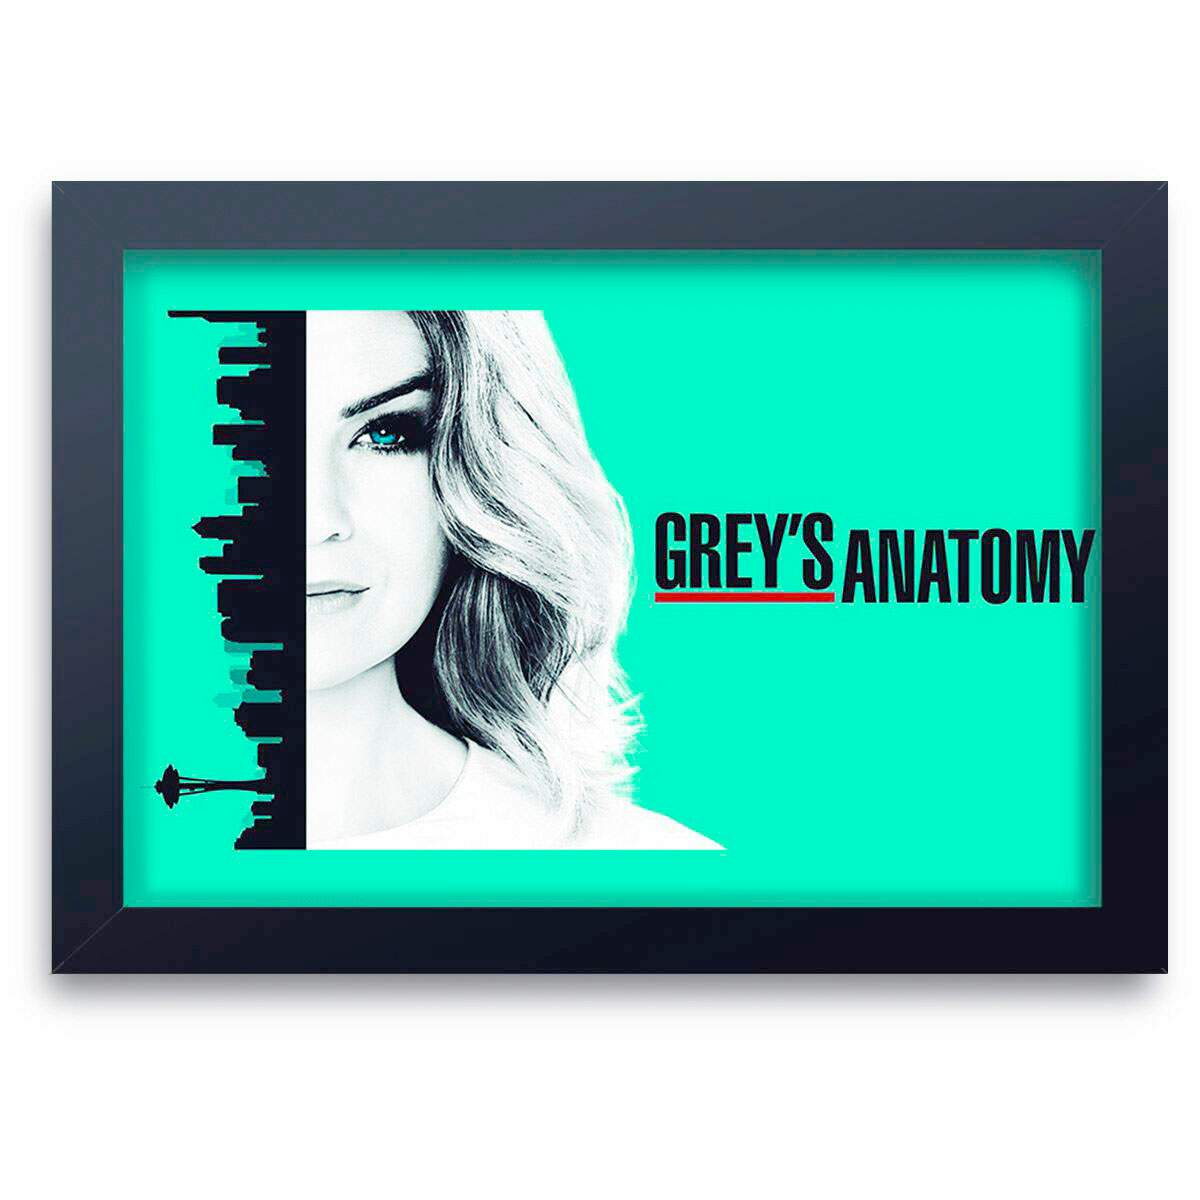 Quadro Decorativo Greys Anatomy 03